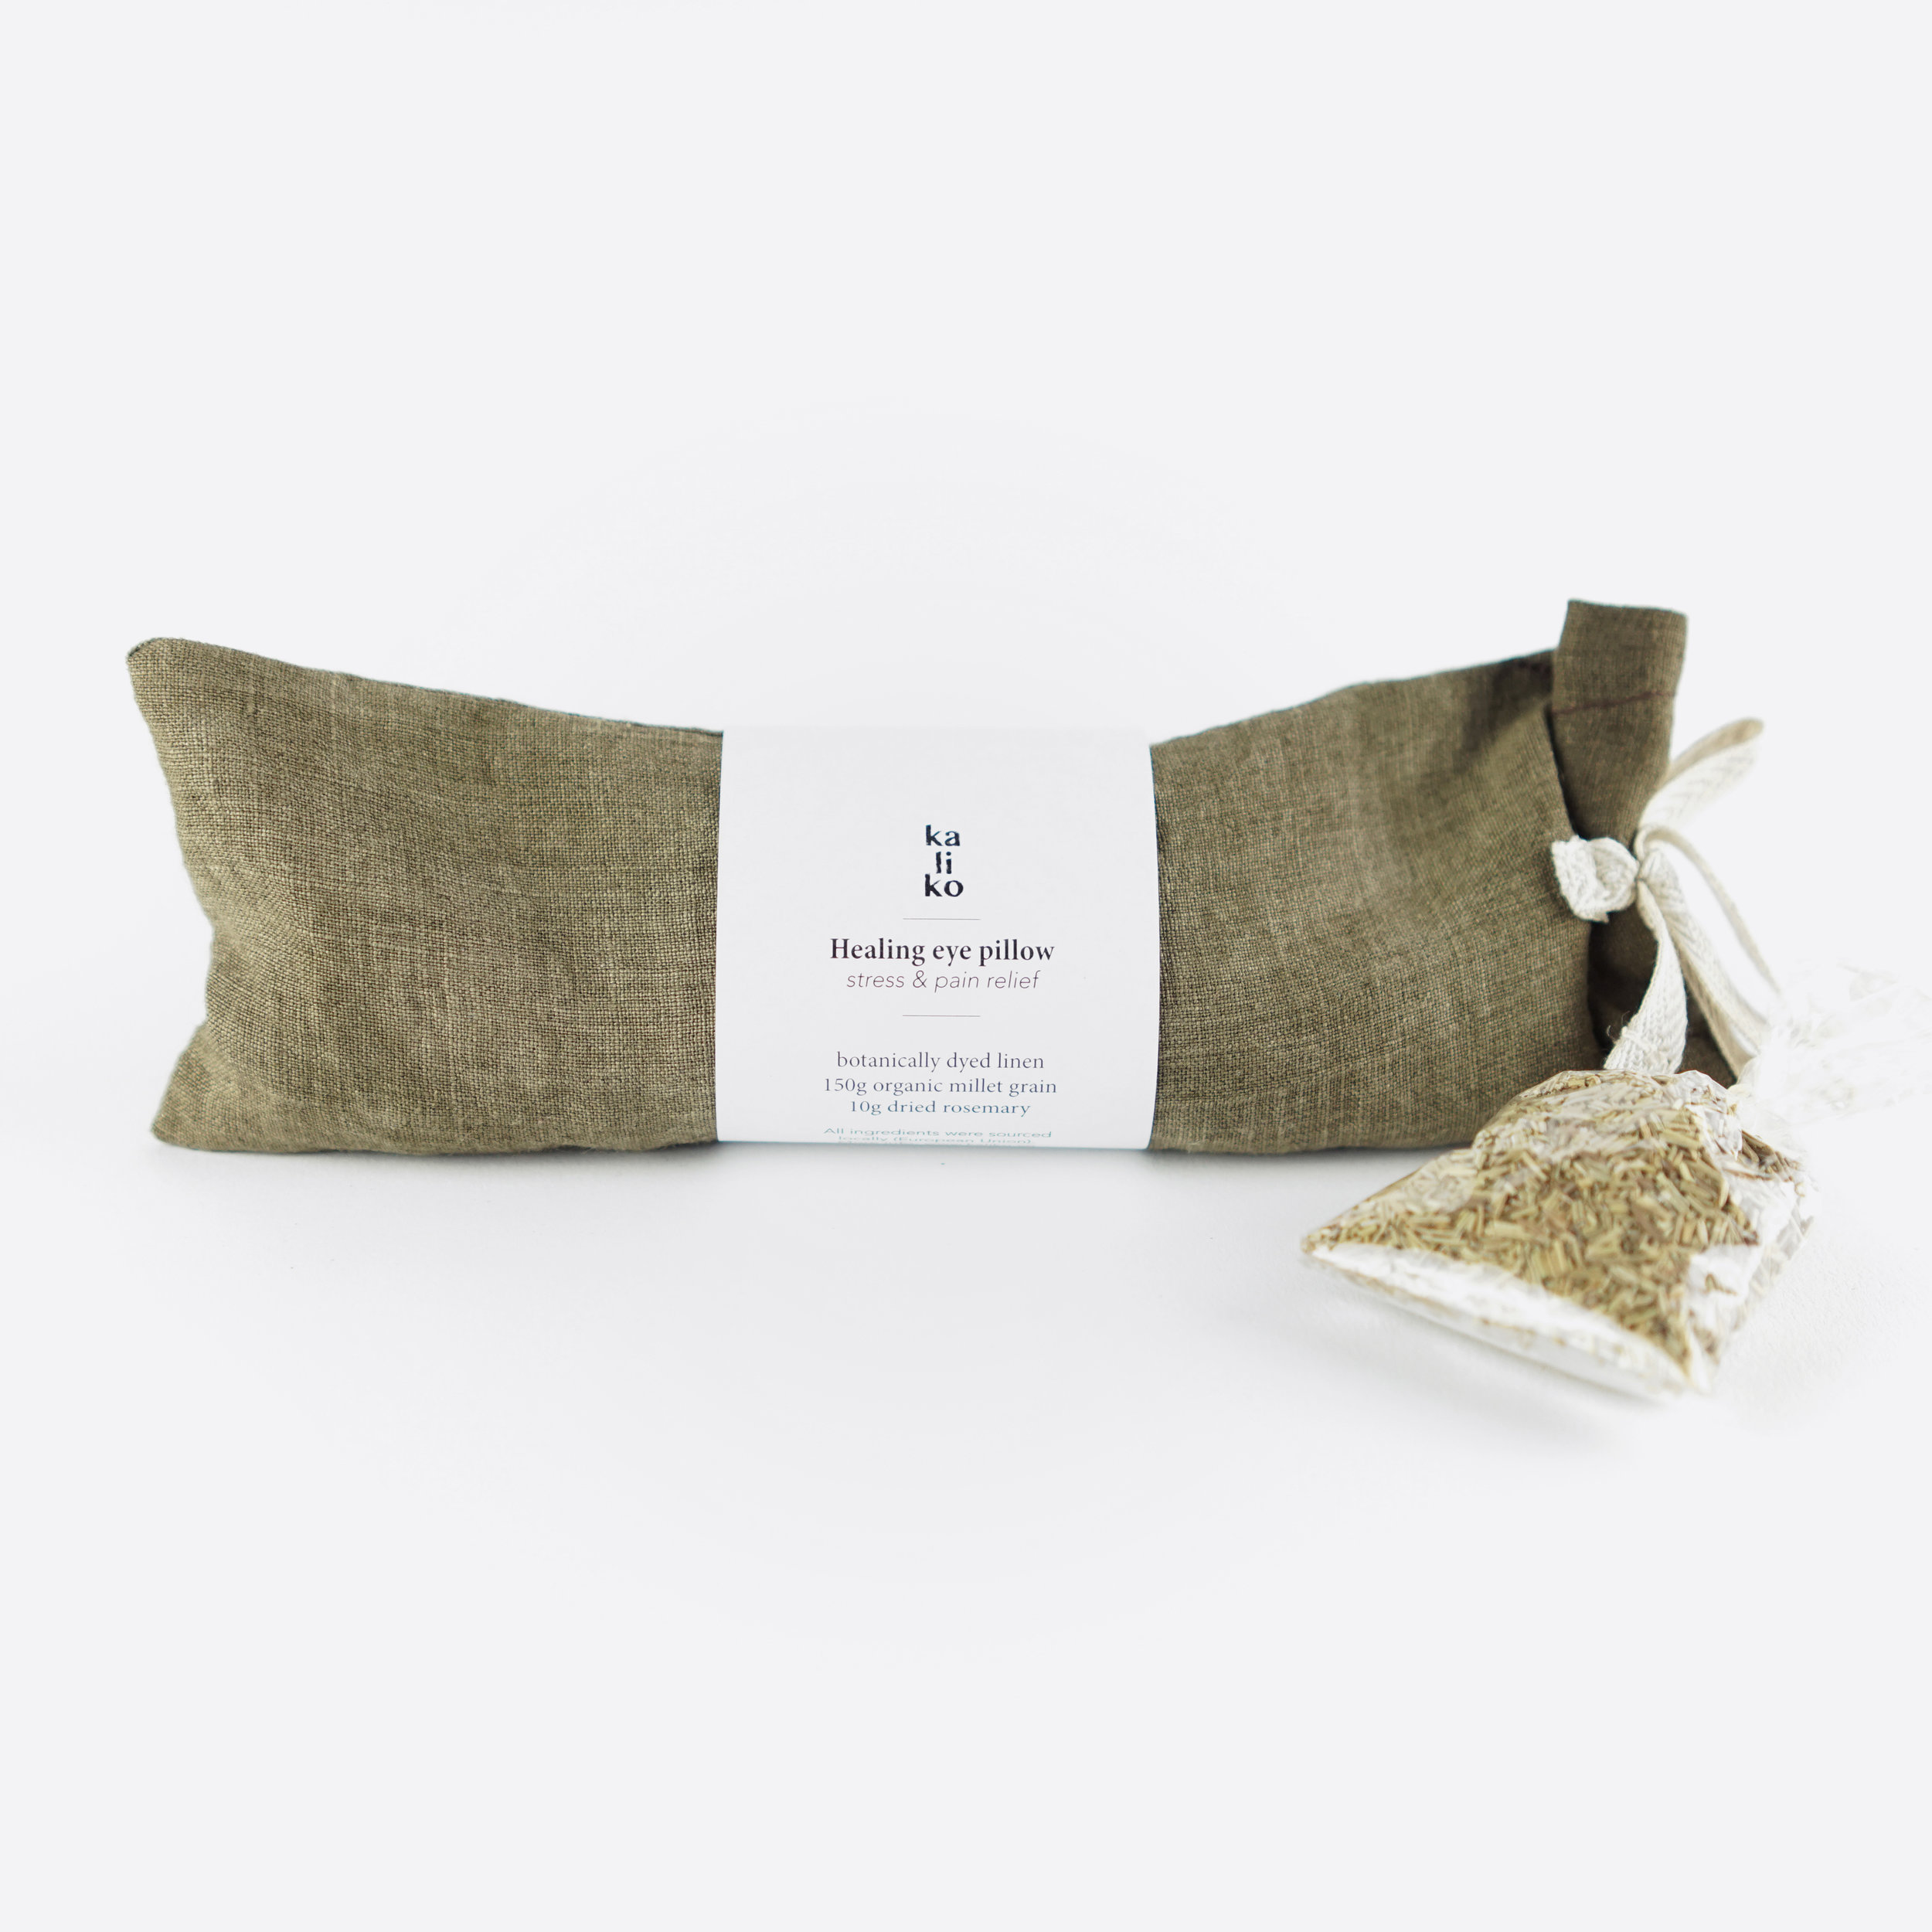 Aromatherapy plant dyed eye pillows by  Kaliko